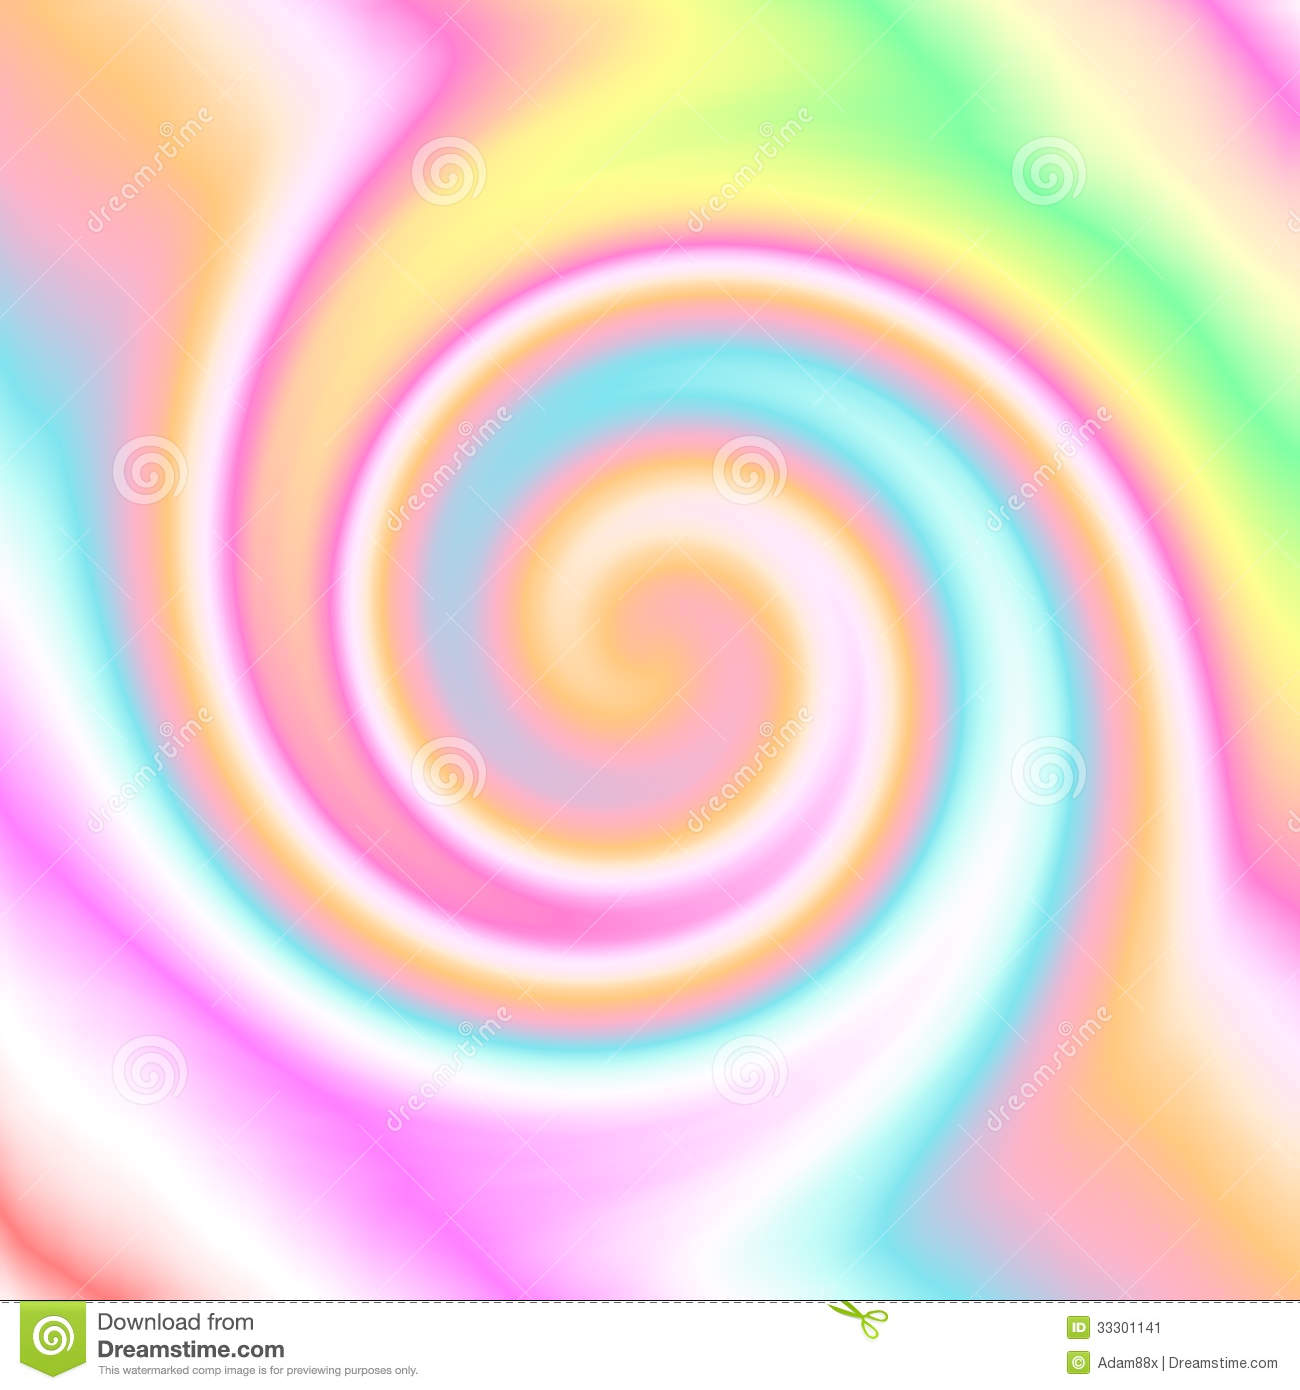 Colorful Swirl Paintings